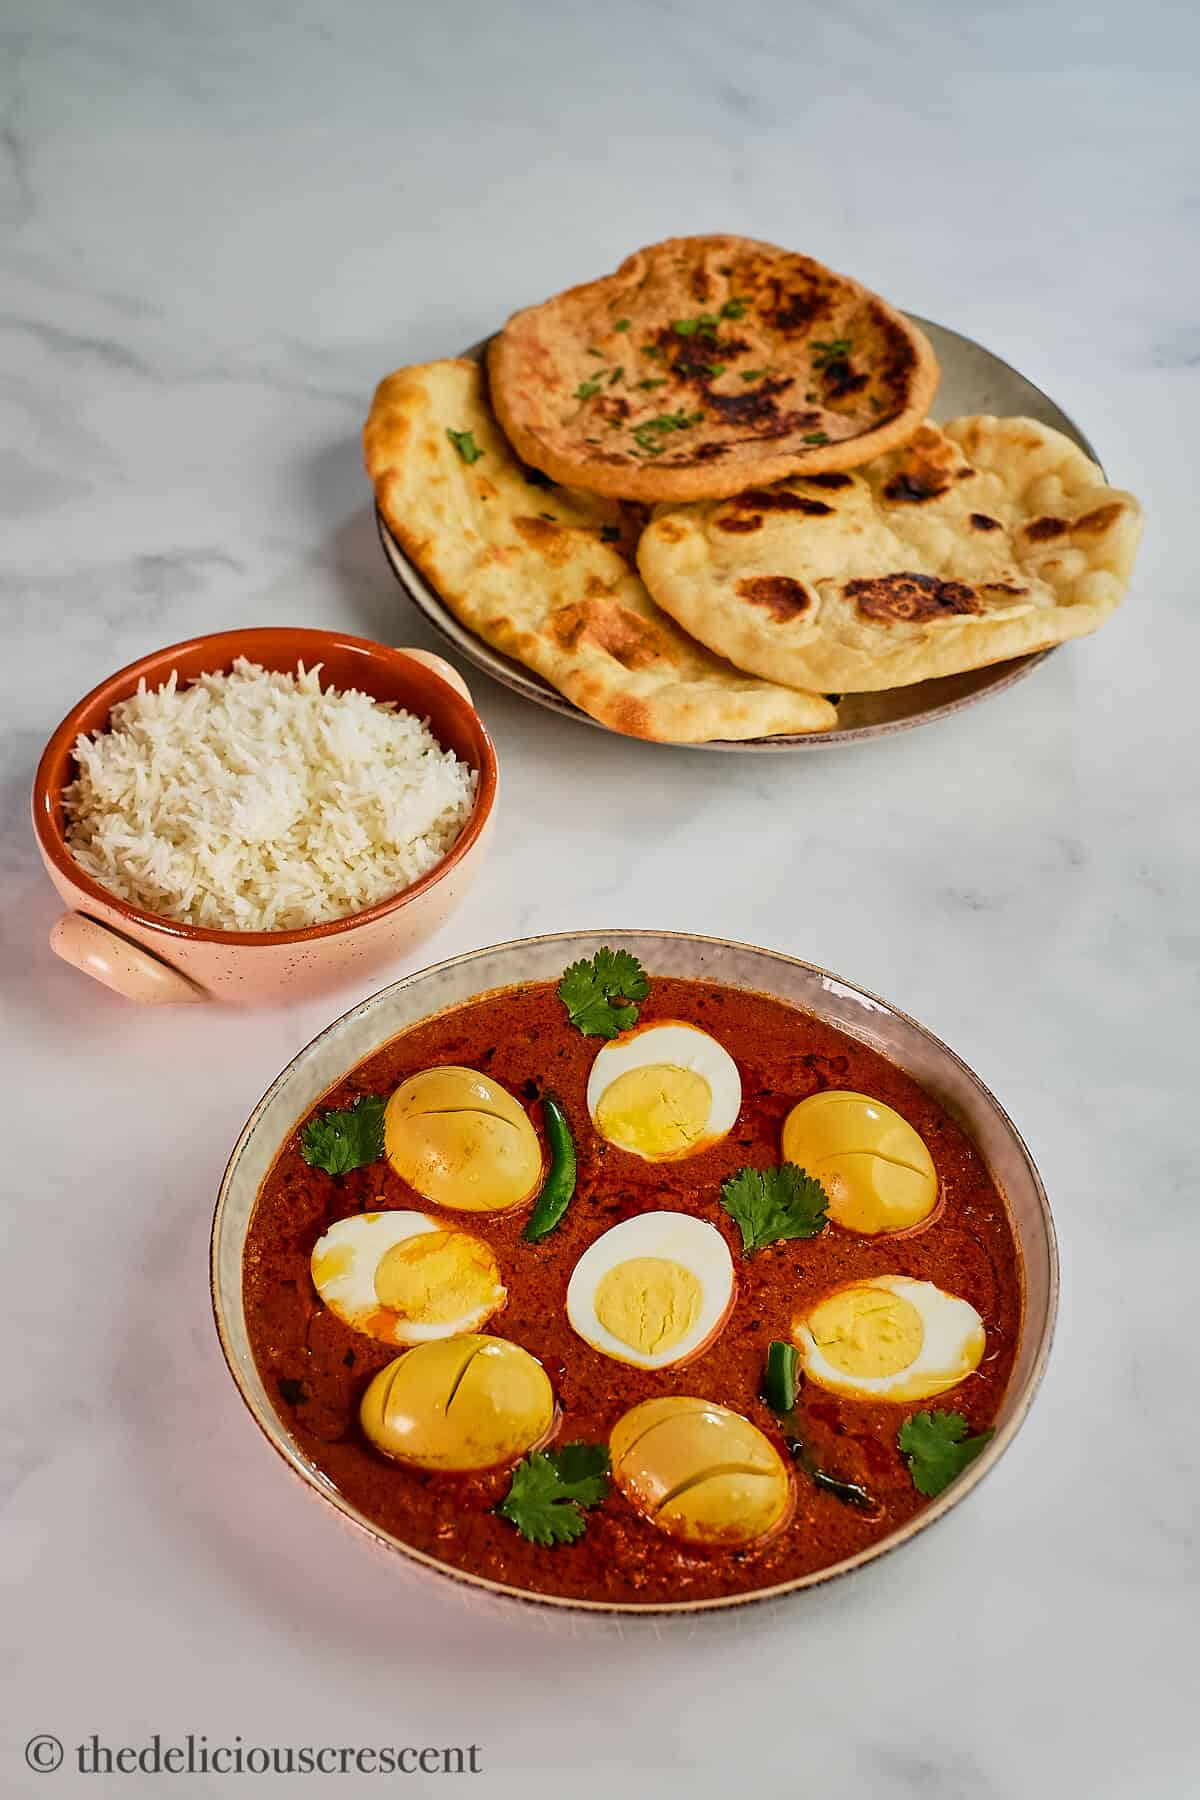 Egg curry served with naan and rice.